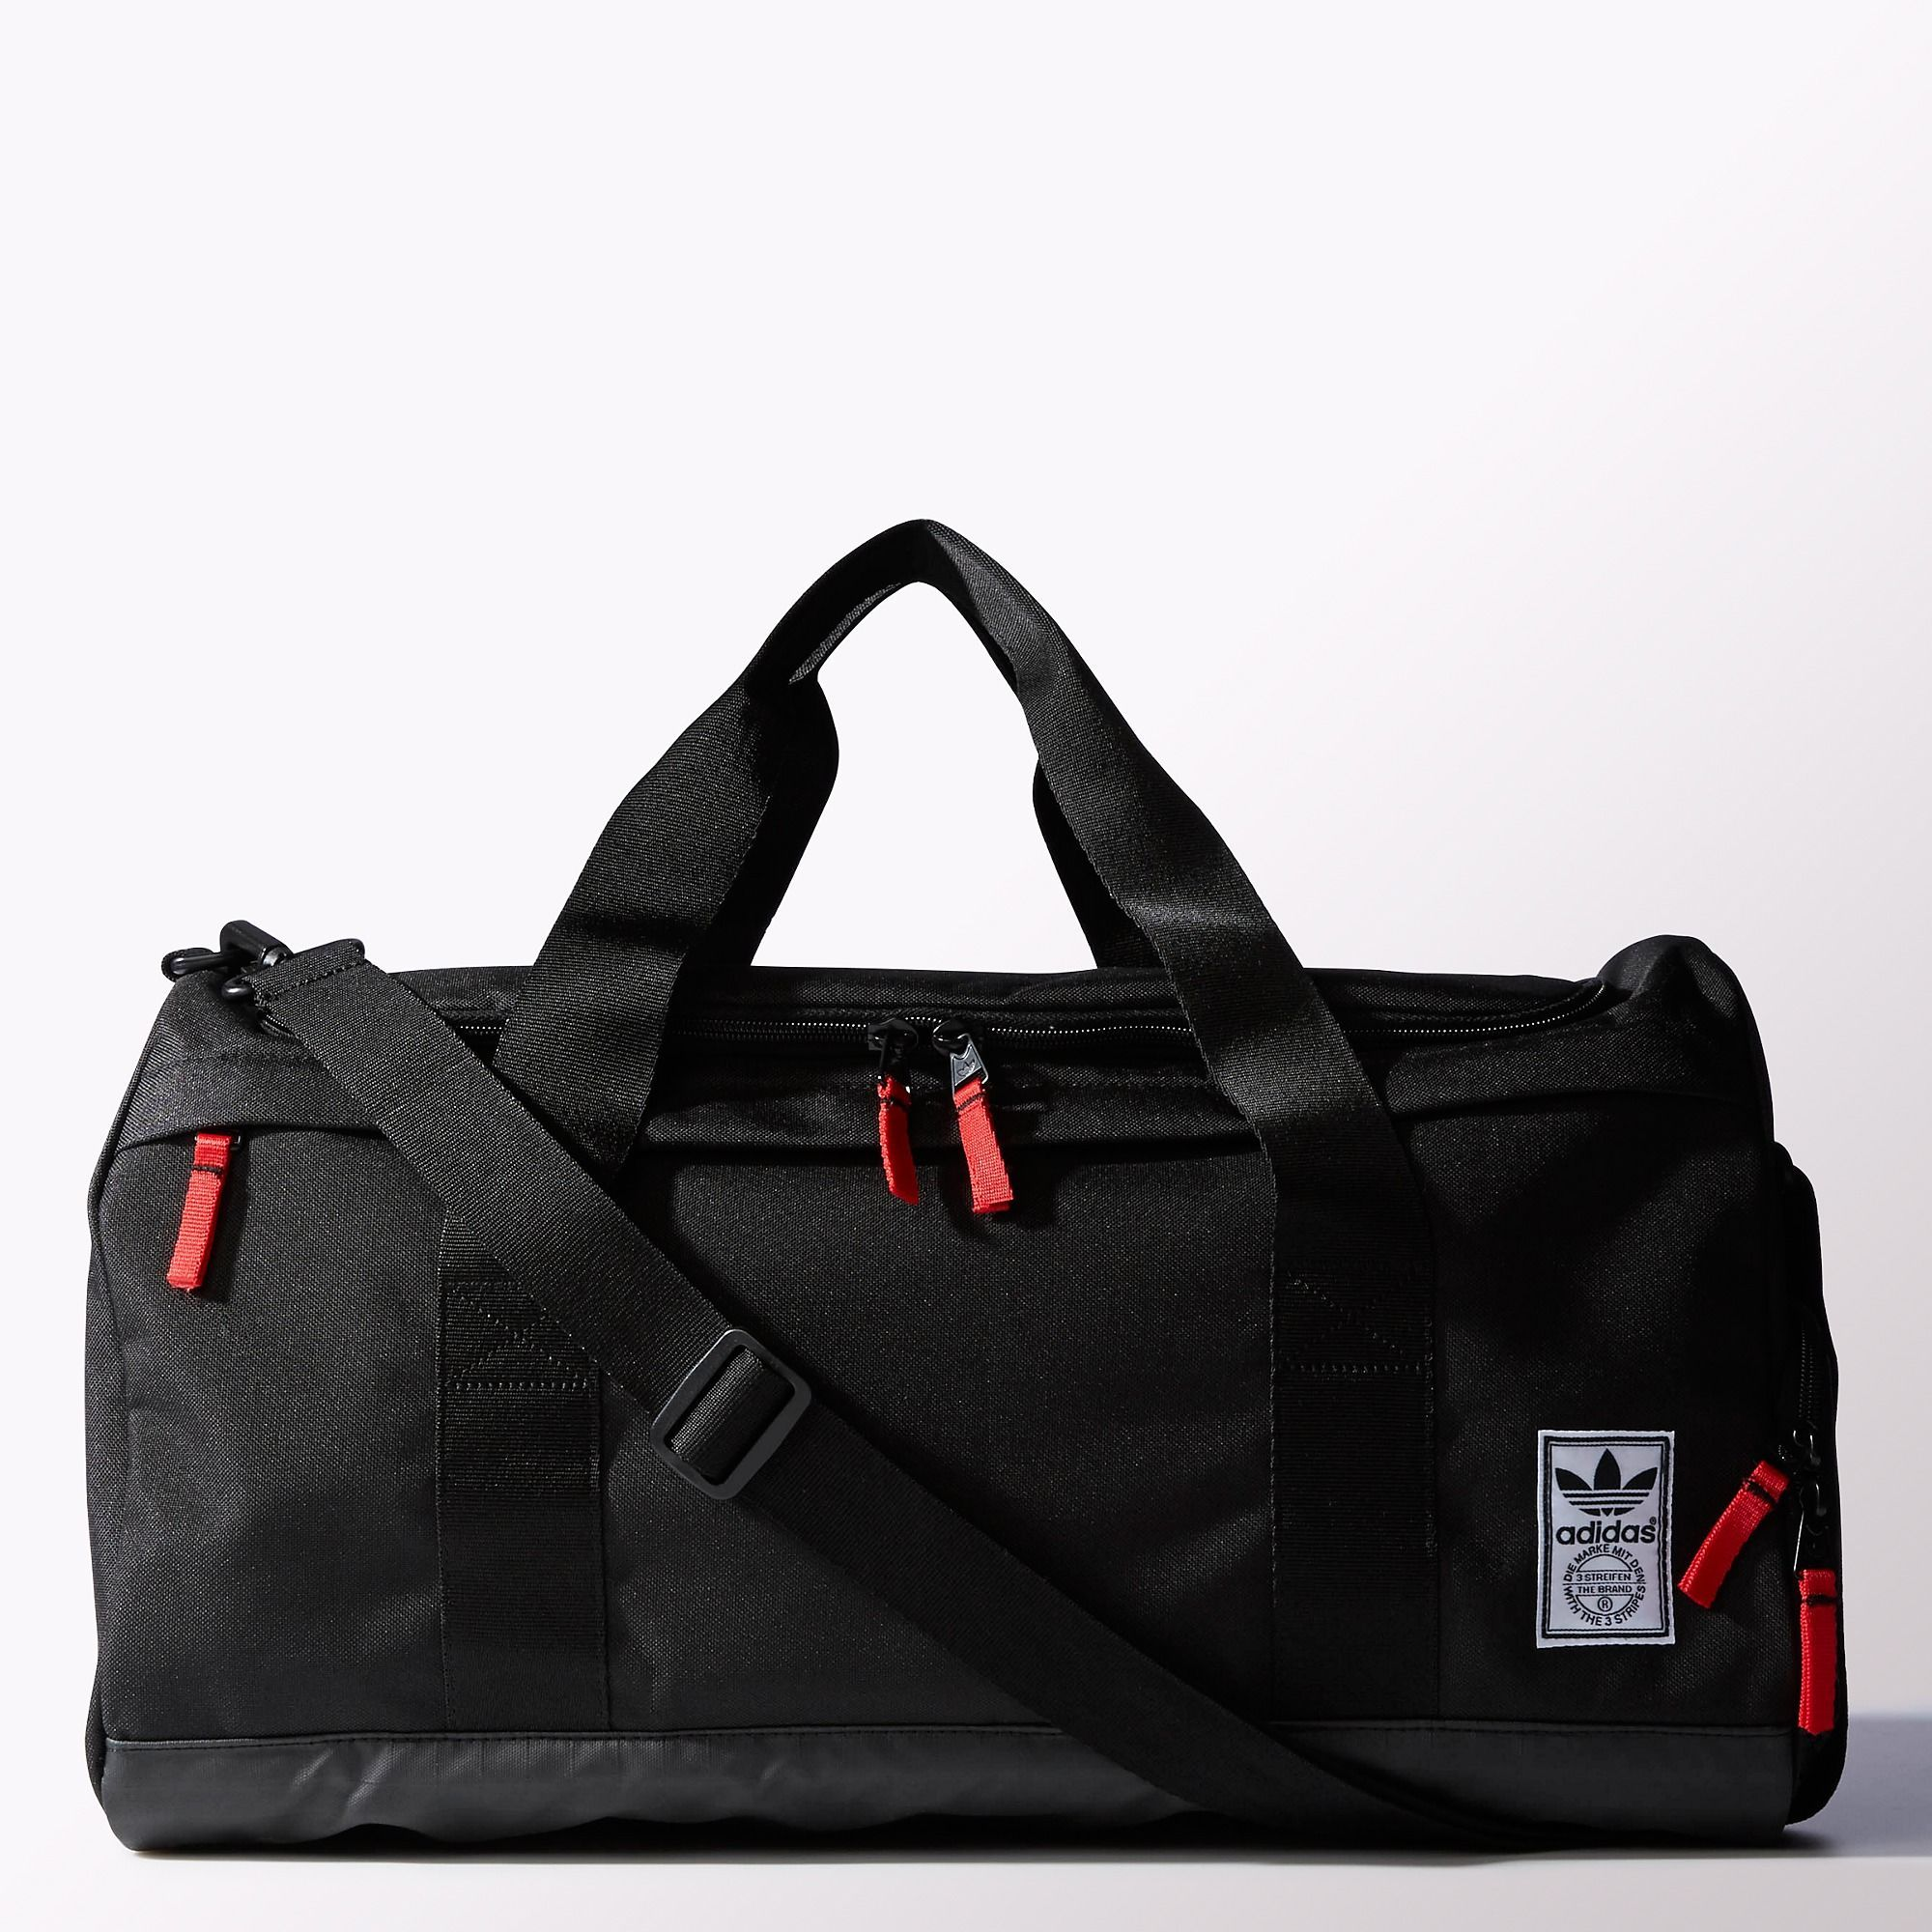 ff321b18c0 adidas - Americana Duffel Bag Black / Light Scarlet H75893 | Carry ...